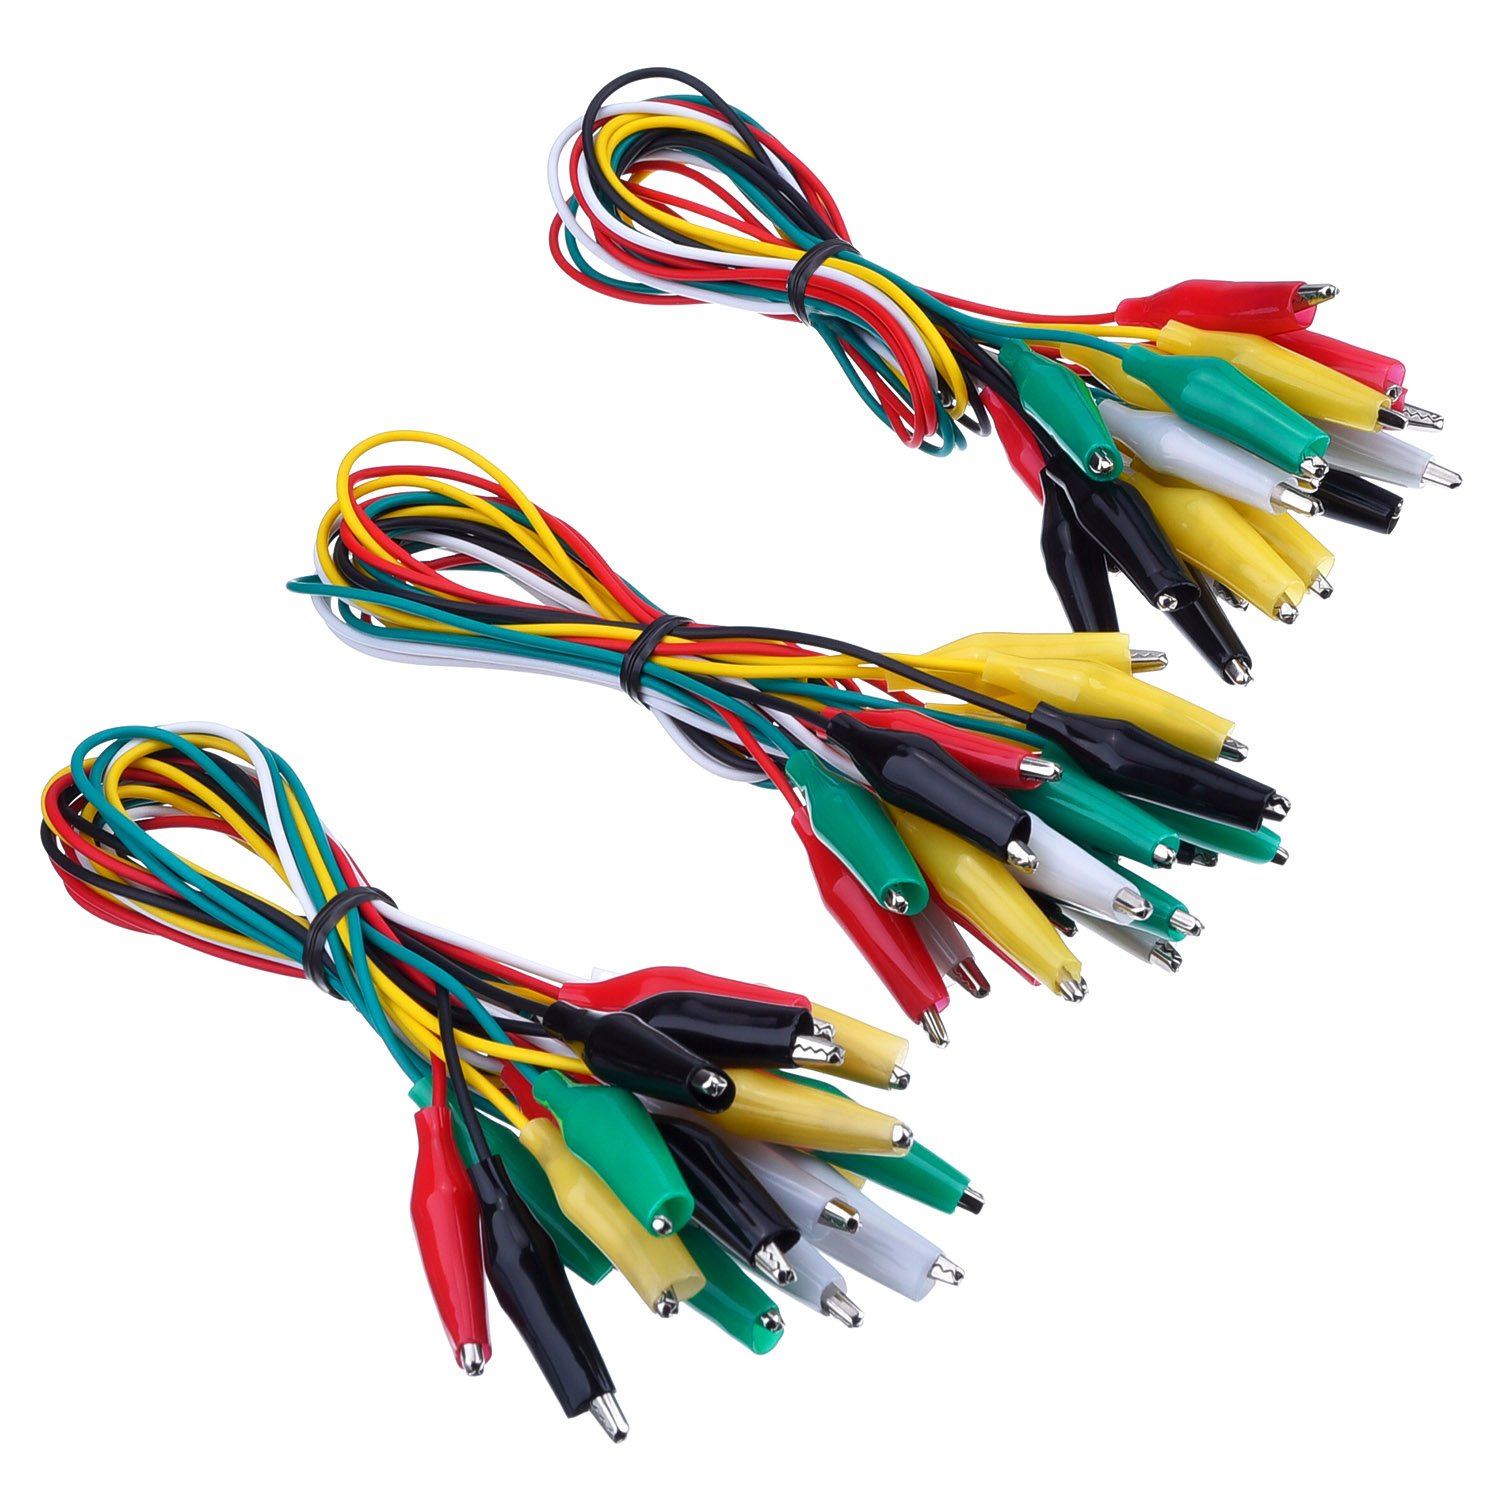 eBoot 30 Pieces Test Leads with Alligator Clips Set Insulated Test ...